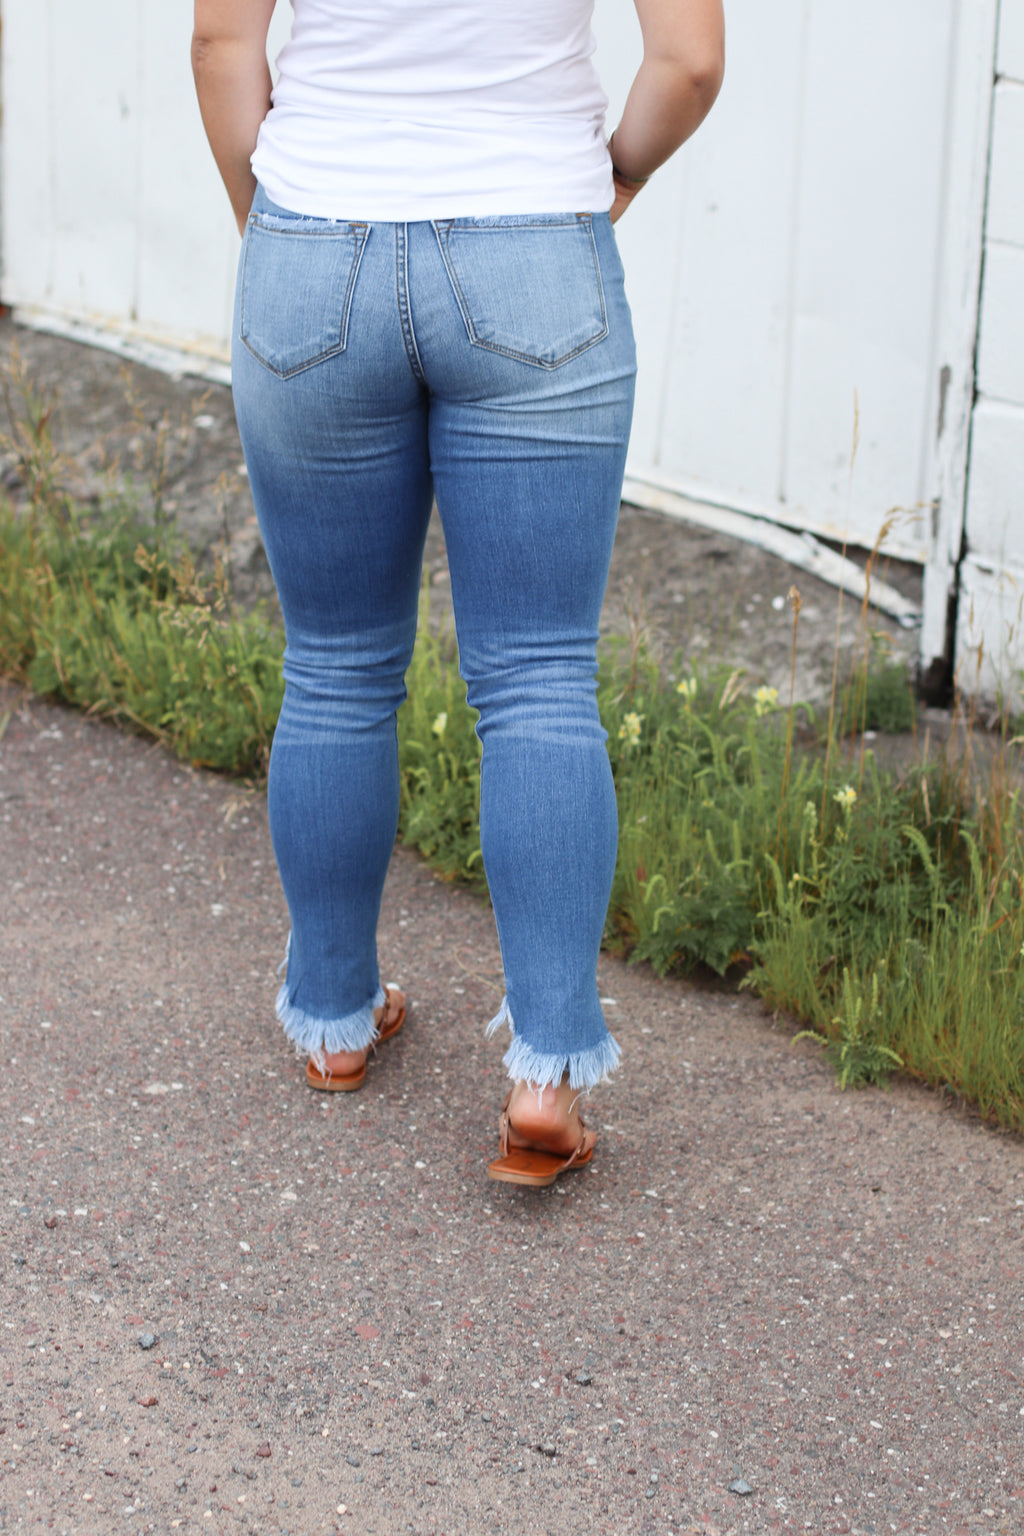 The Brooks High Rise Jeans